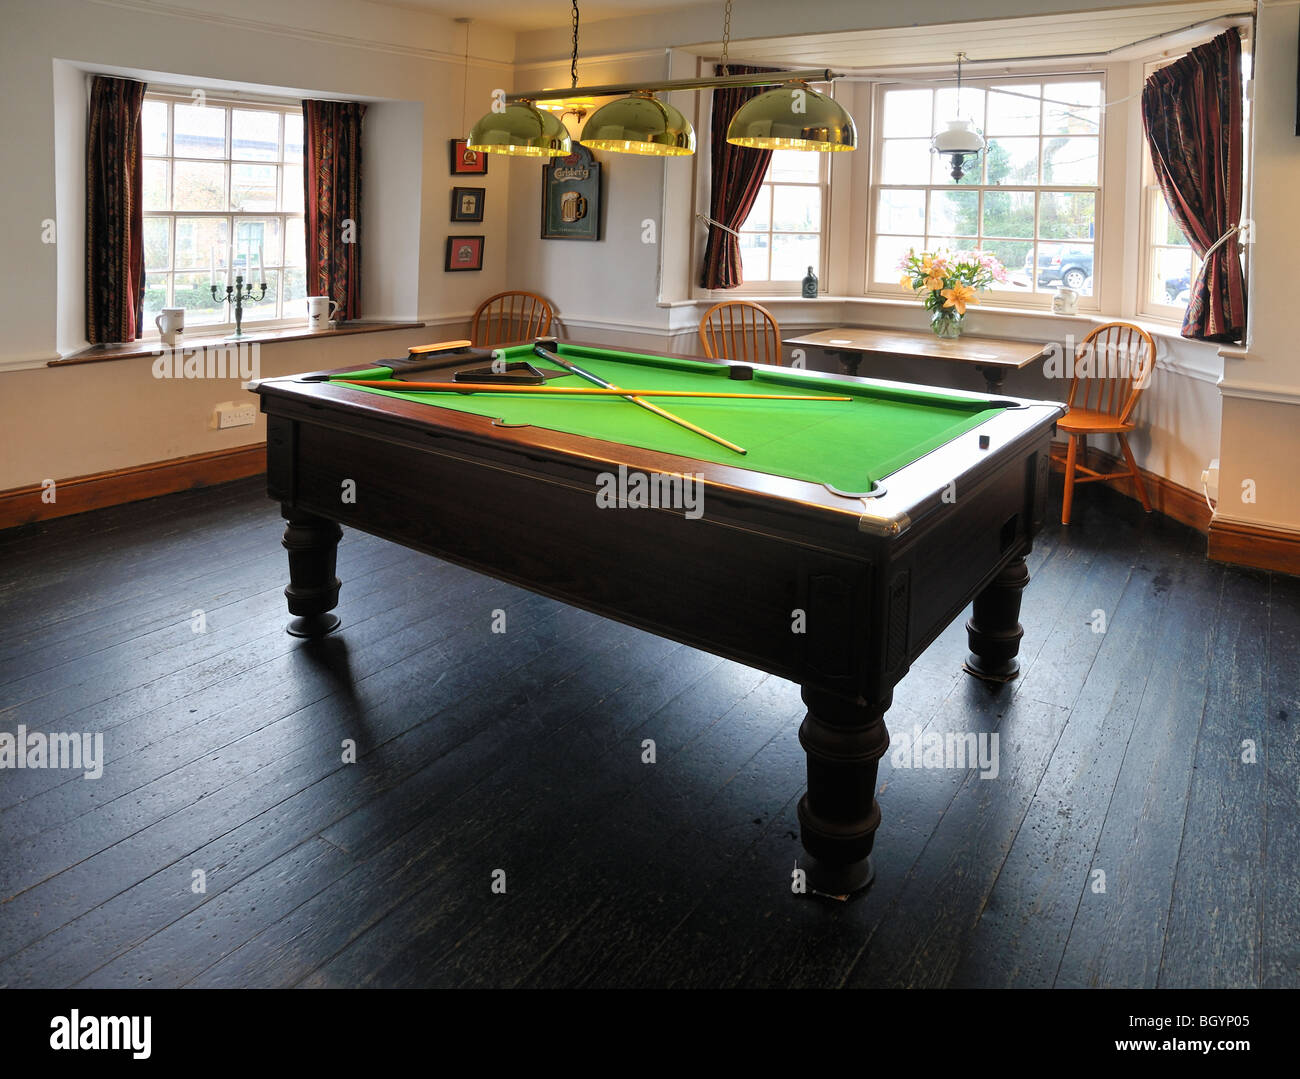 A pool table in a pub bar - Stock Image